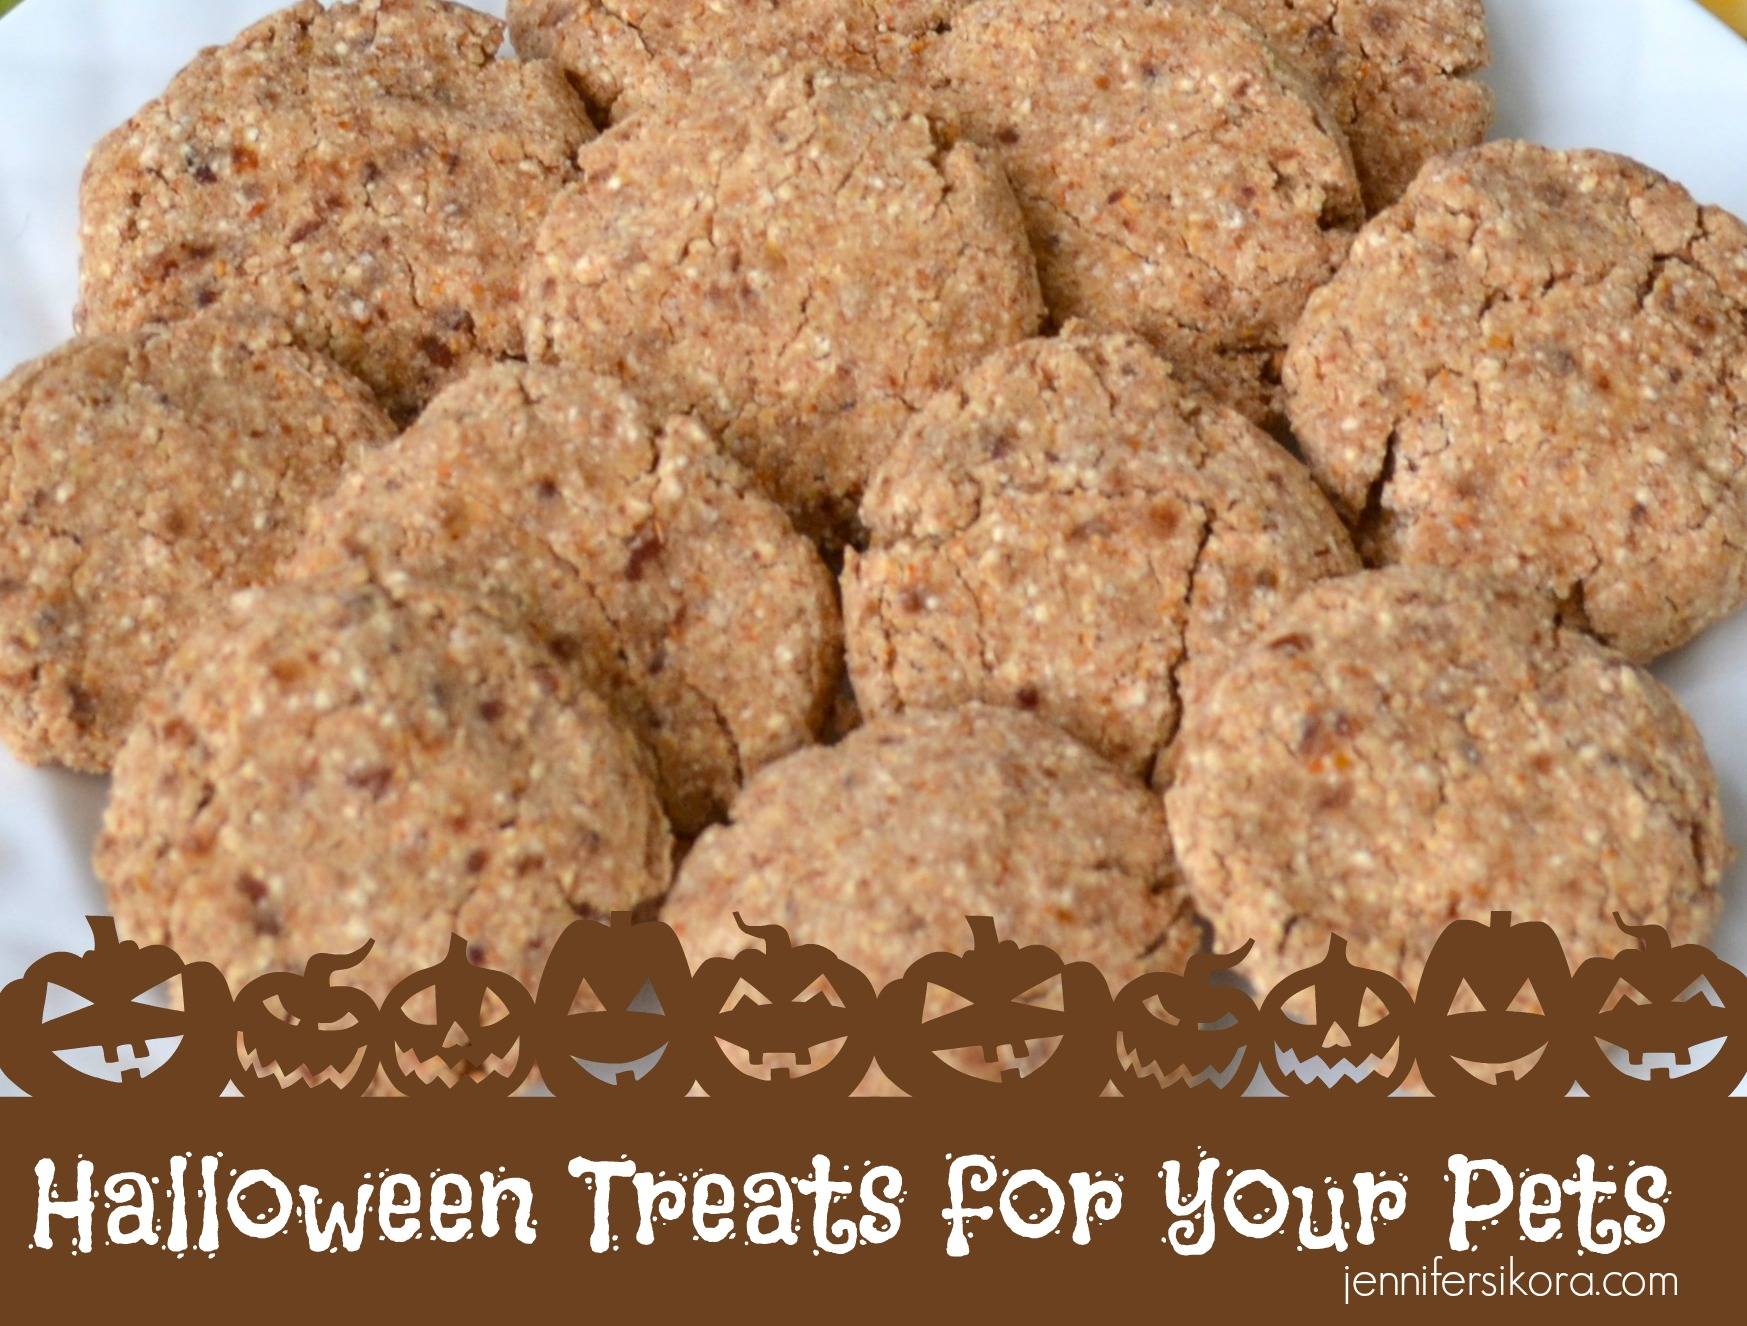 2 Homemade Halloween Treats for Your Pets